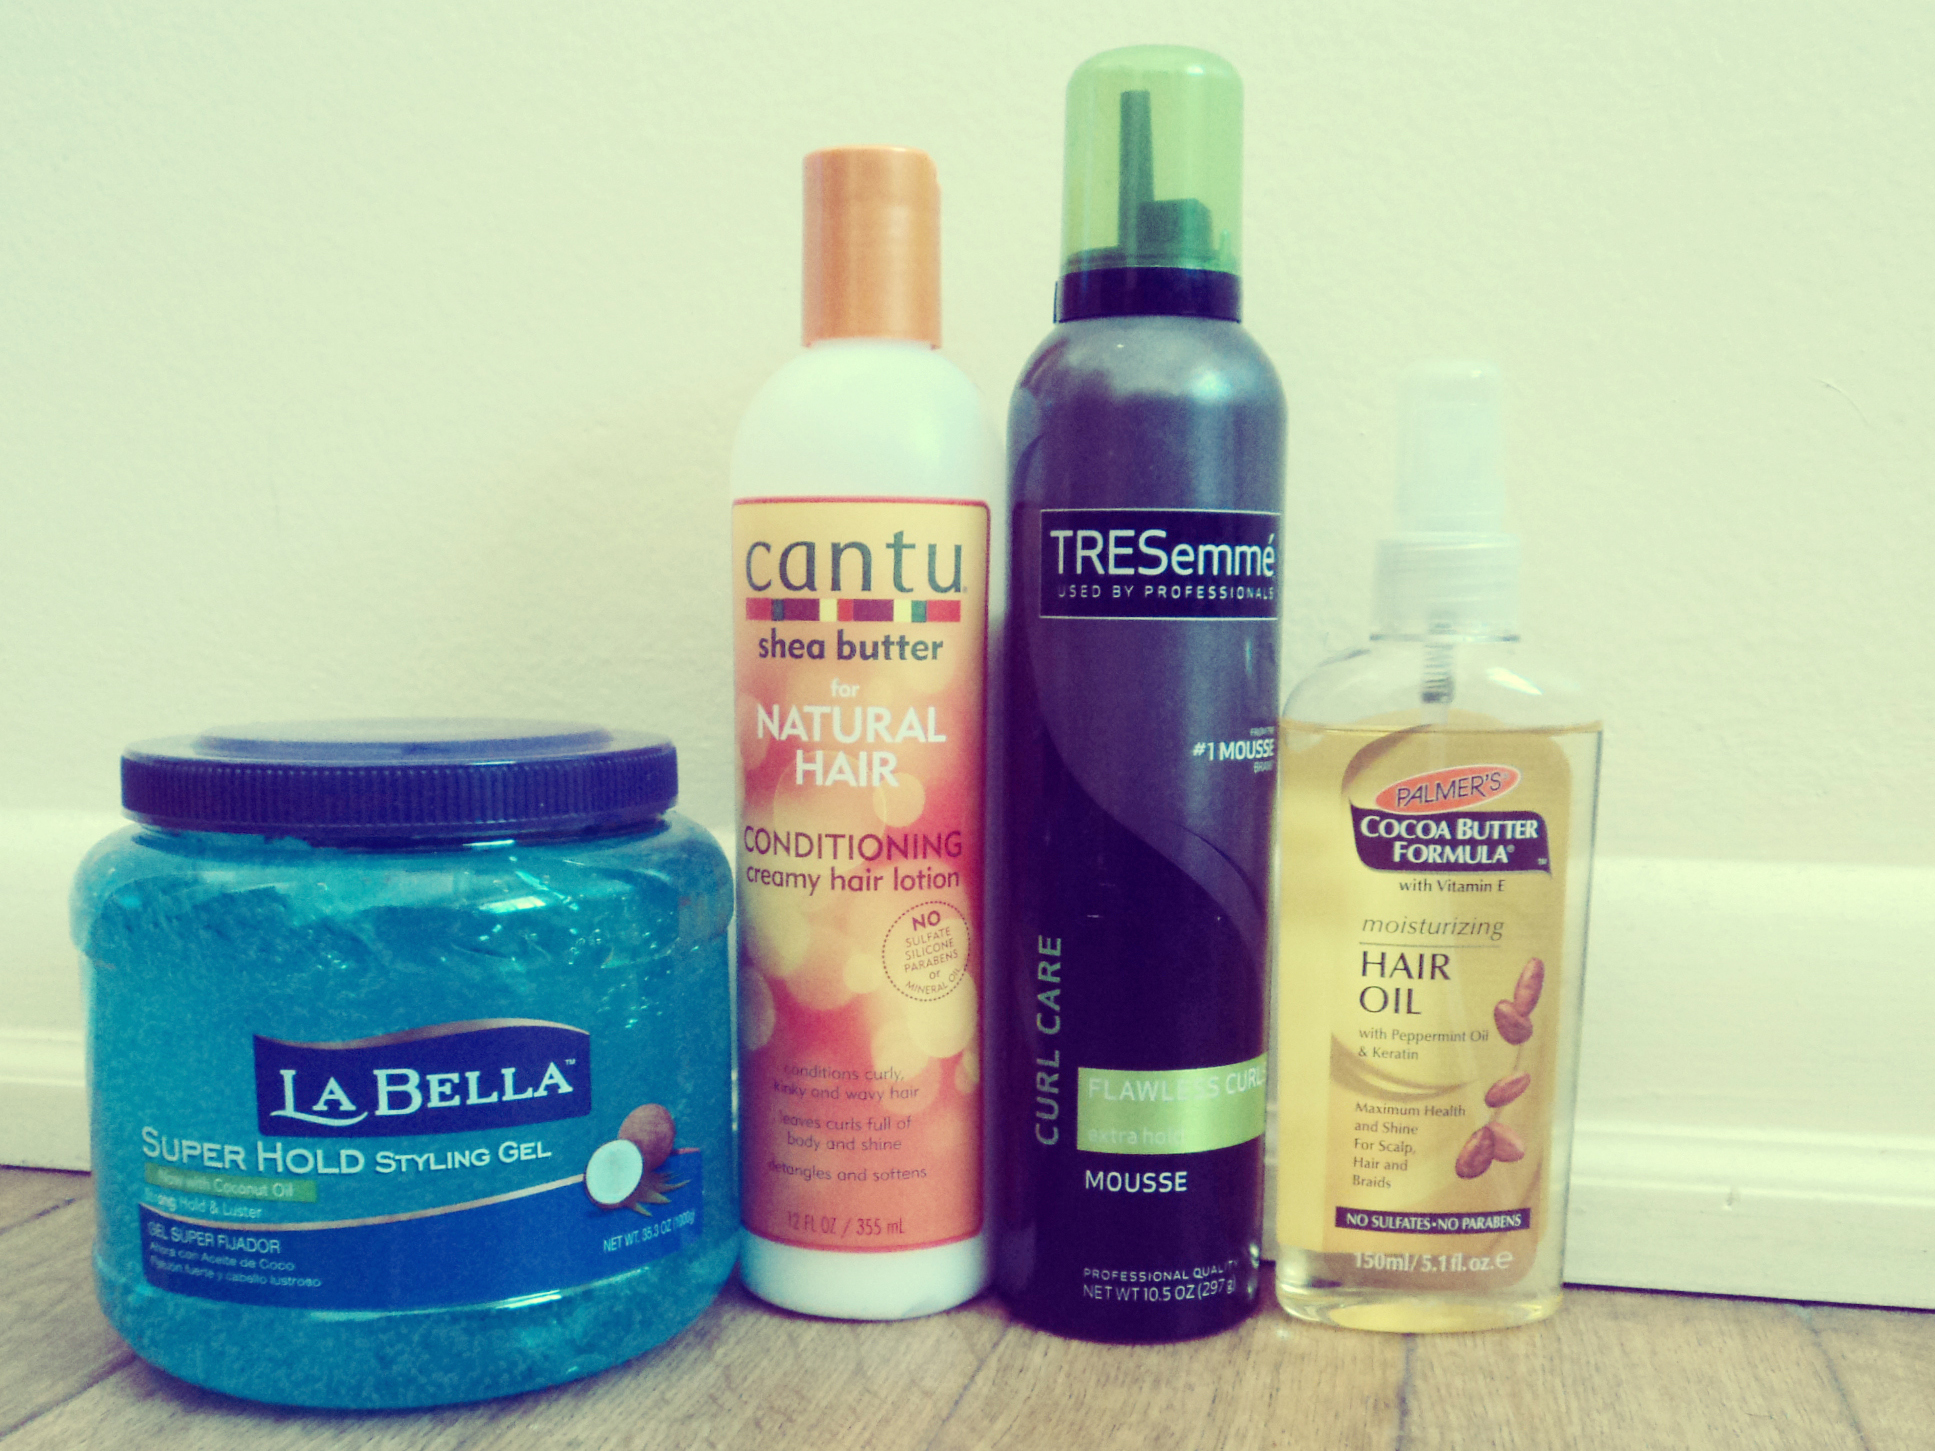 My favorite products for natural hair